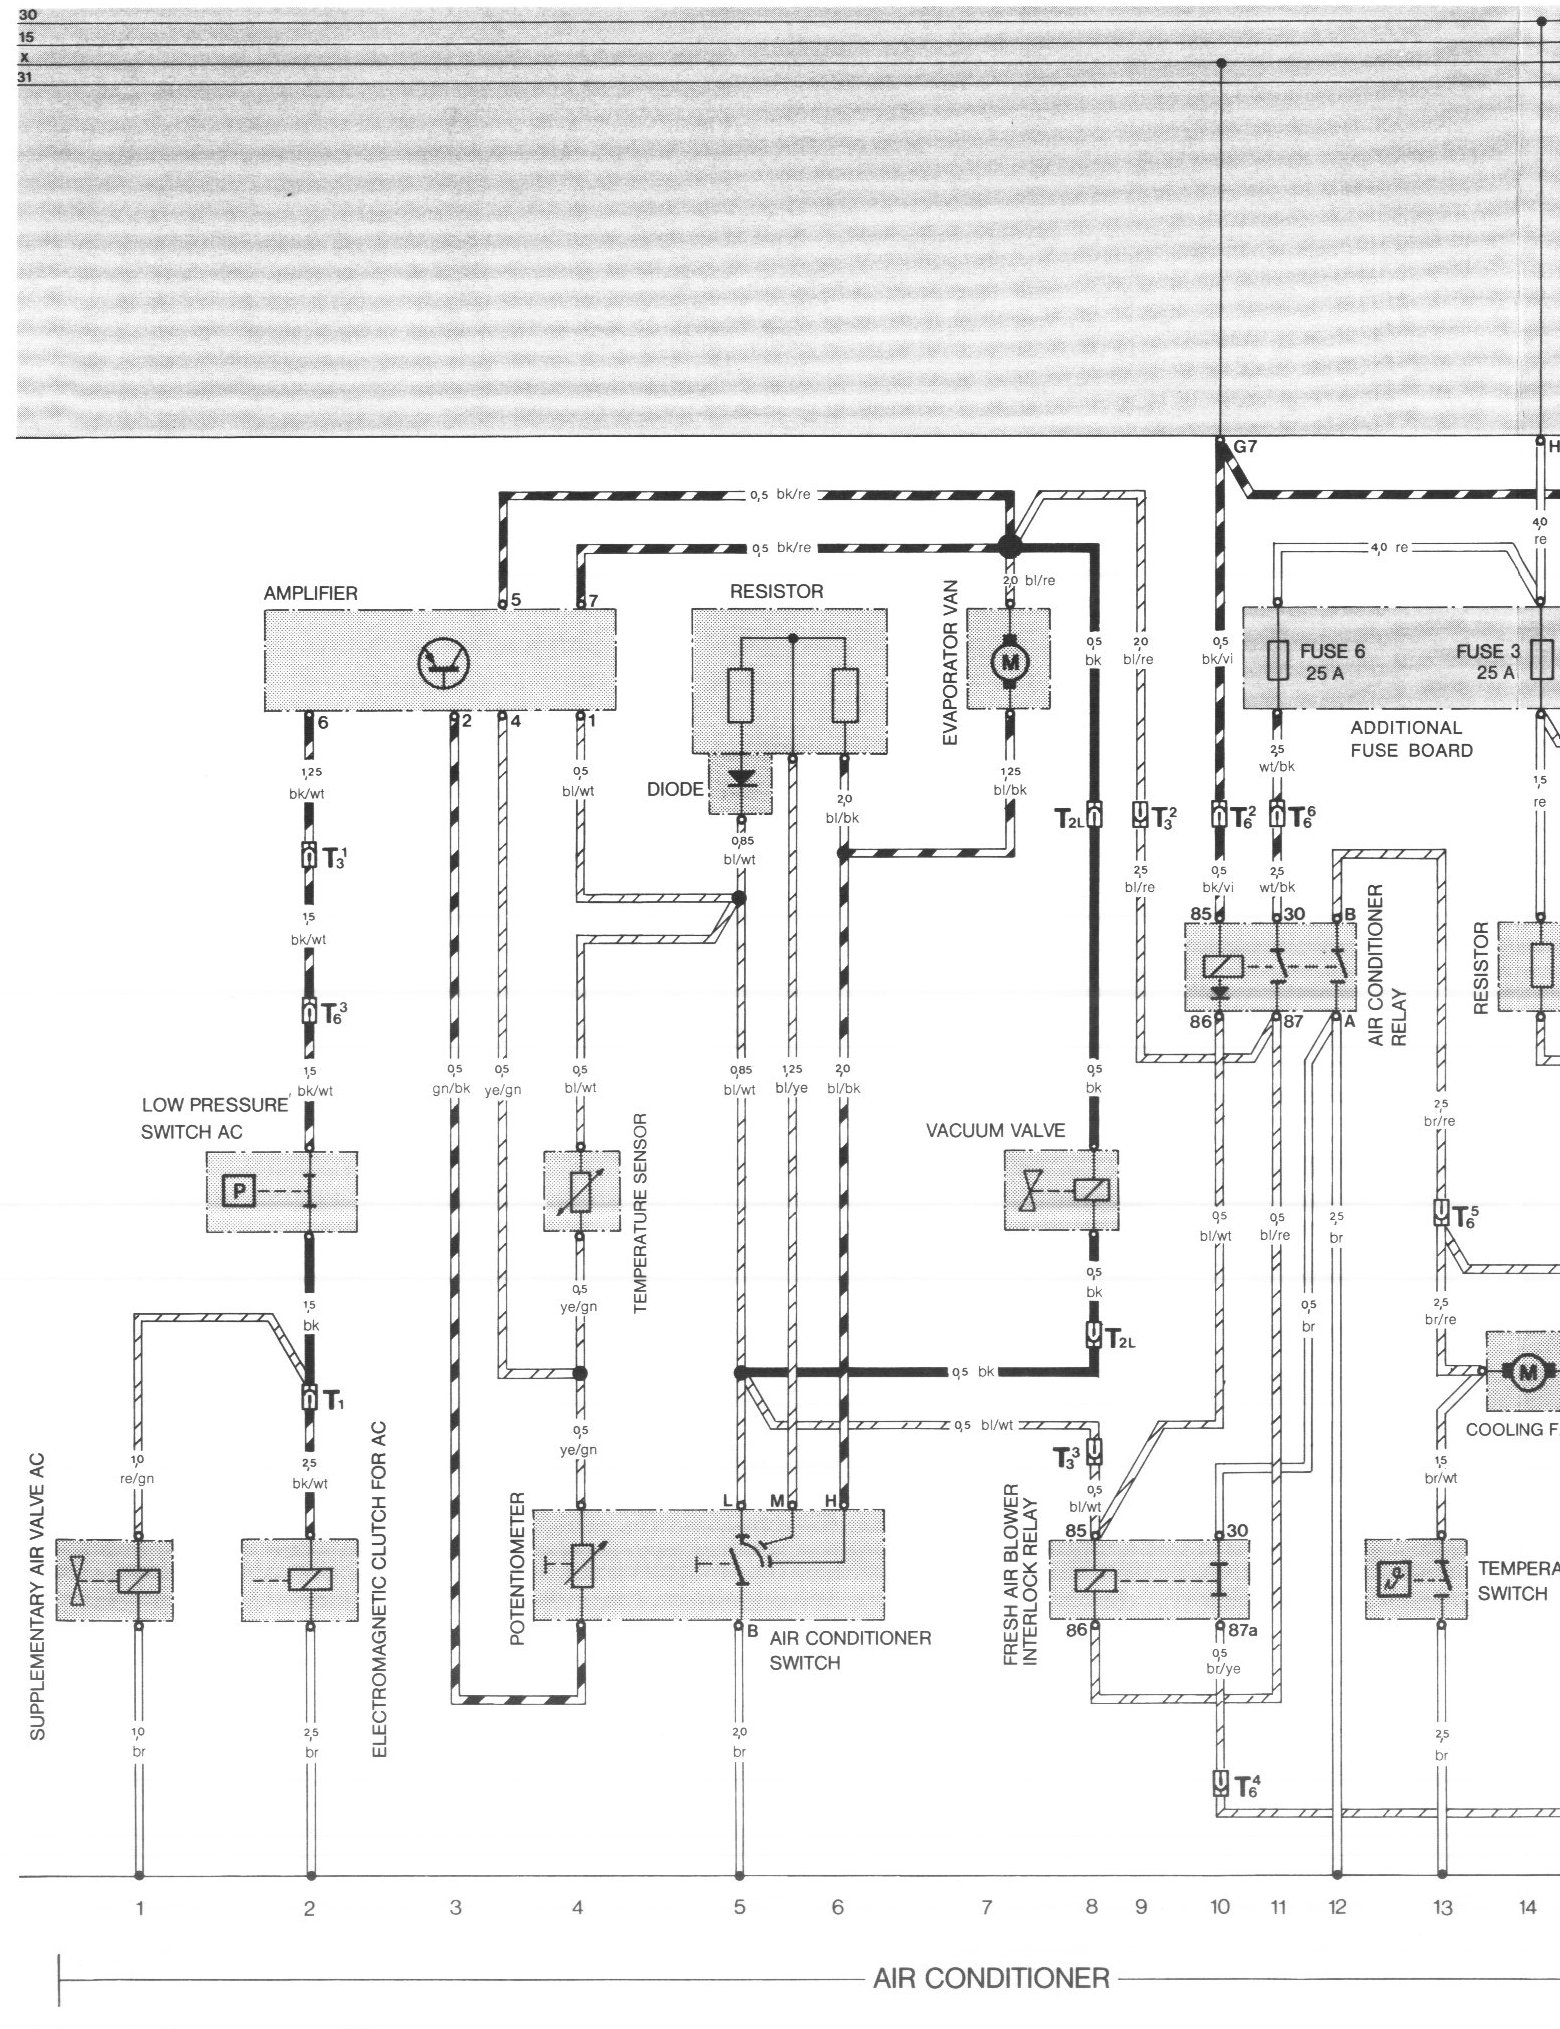 I Require A Circuit Diagram For My Porsche 944 S2 Cabriolet In 1uzfe Engine Hope This Helps You Out Bruce